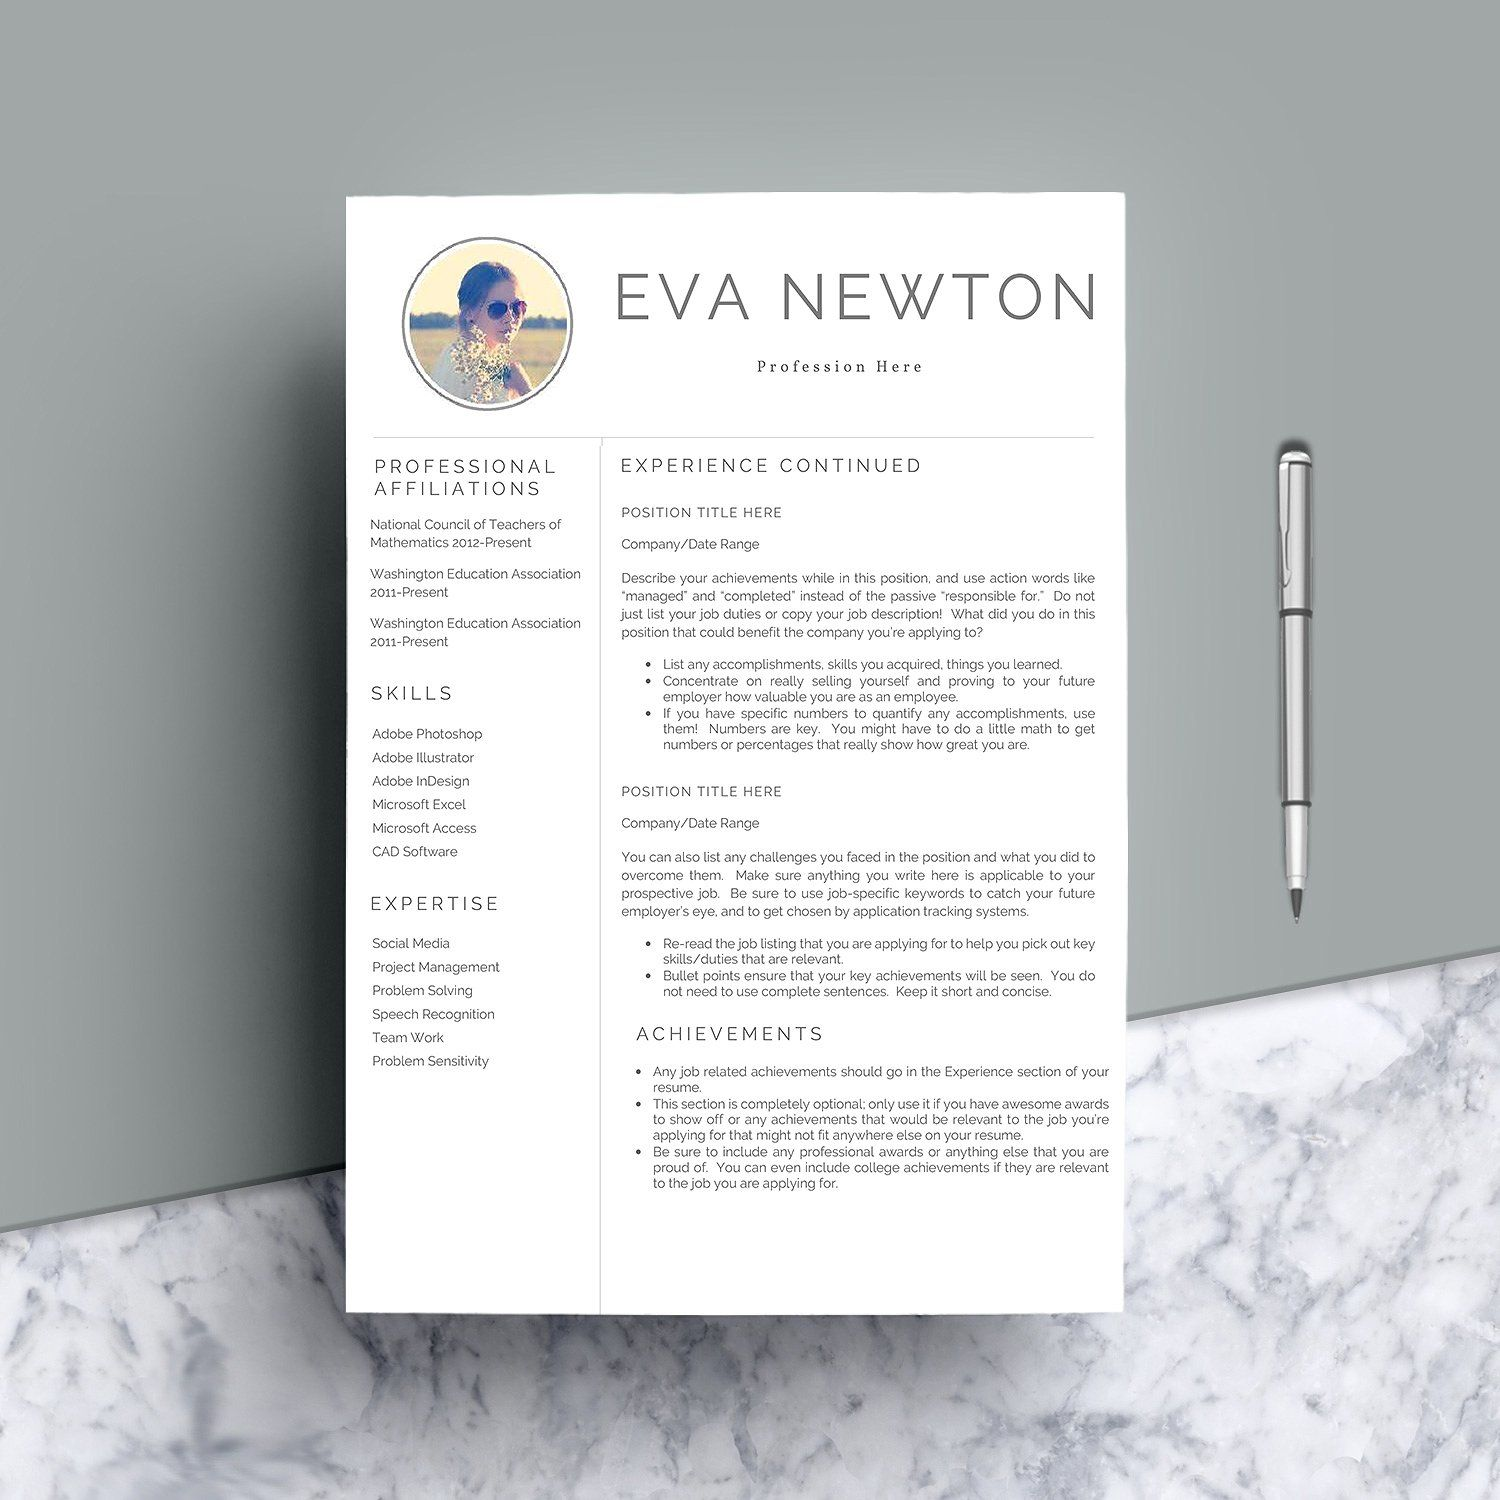 A Successful Job Application With Giga Cv Resume Cv Resume Resume Summary